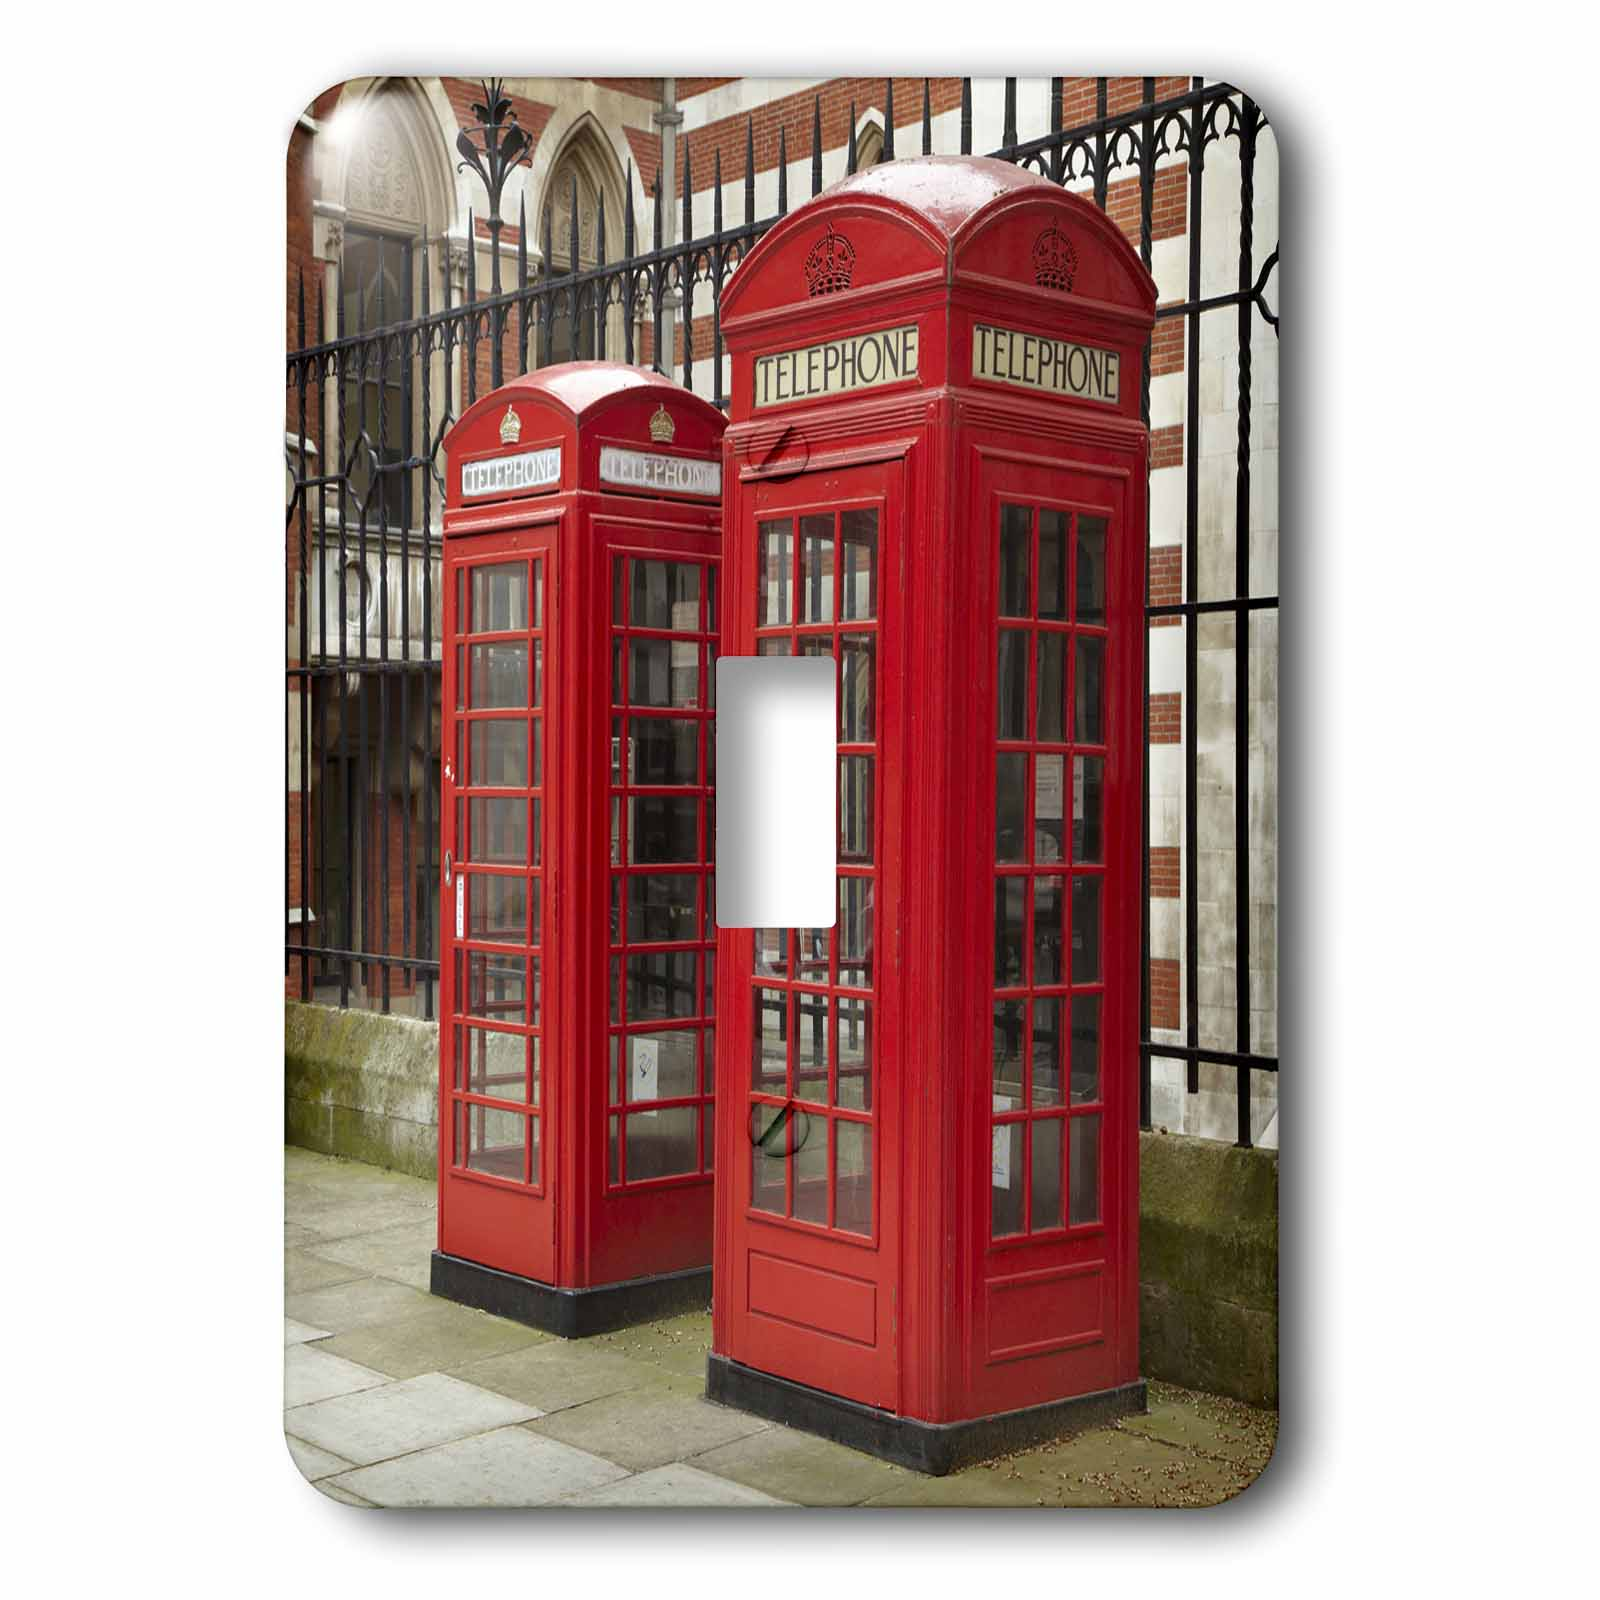 3dRose Phone boxes, Royal Courts of Justice, London, England - EU33 DWA0003 - David Wall, 2 Plug Outlet Cover